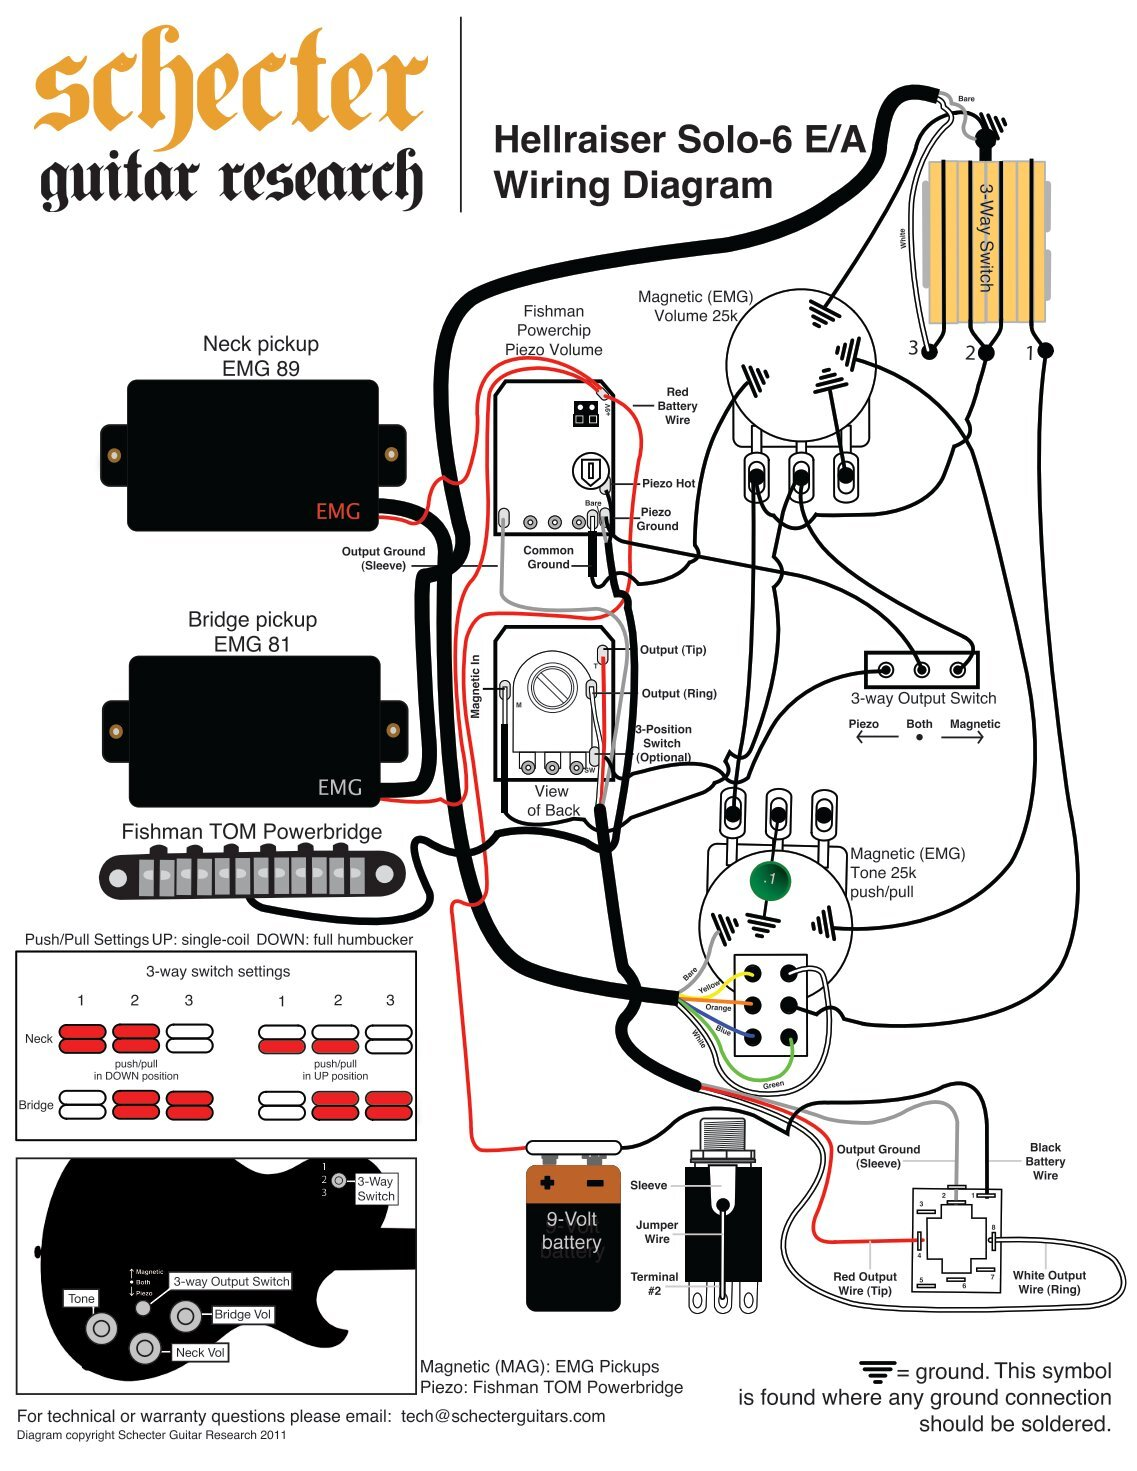 hellraiser solo 6 wiring diagram schecter guitars?resize\\\\\\\\\\\\\\\\\\\\\\\\\\\\\\\\\\\\\\\\\\\\\\\\\\\\\\\\\\\\\\\\\\\\\\\\\\\\\\\\\\\\\\\\\\\\\\\\\\\\\\\\\\\\\\\\\\\\\\\\\\\\\\\=665%2C860\\\\\\\\\\\\\\\\\\\\\\\\\\\\\\\\\\\\\\\\\\\\\\\\\\\\\\\\\\\\\\\\\\\\\\\\\\\\\\\\\\\\\\\\\\\\\\\\\\\\\\\\\\\\\\\\\\\\\\\\\\\\\\\&ssl\\\\\\\\\\\\\\\\\\\\\\\\\\\\\\\\\\\\\\\\\\\\\\\\\\\\\\\\\\\\\\\\\\\\\\\\\\\\\\\\\\\\\\\\\\\\\\\\\\\\\\\\\\\\\\\\\\\\\\\\\\\\\\\=1 outstanding zakk wylde emg wiring diagram pictures wiring emg wiring schematics at alyssarenee.co